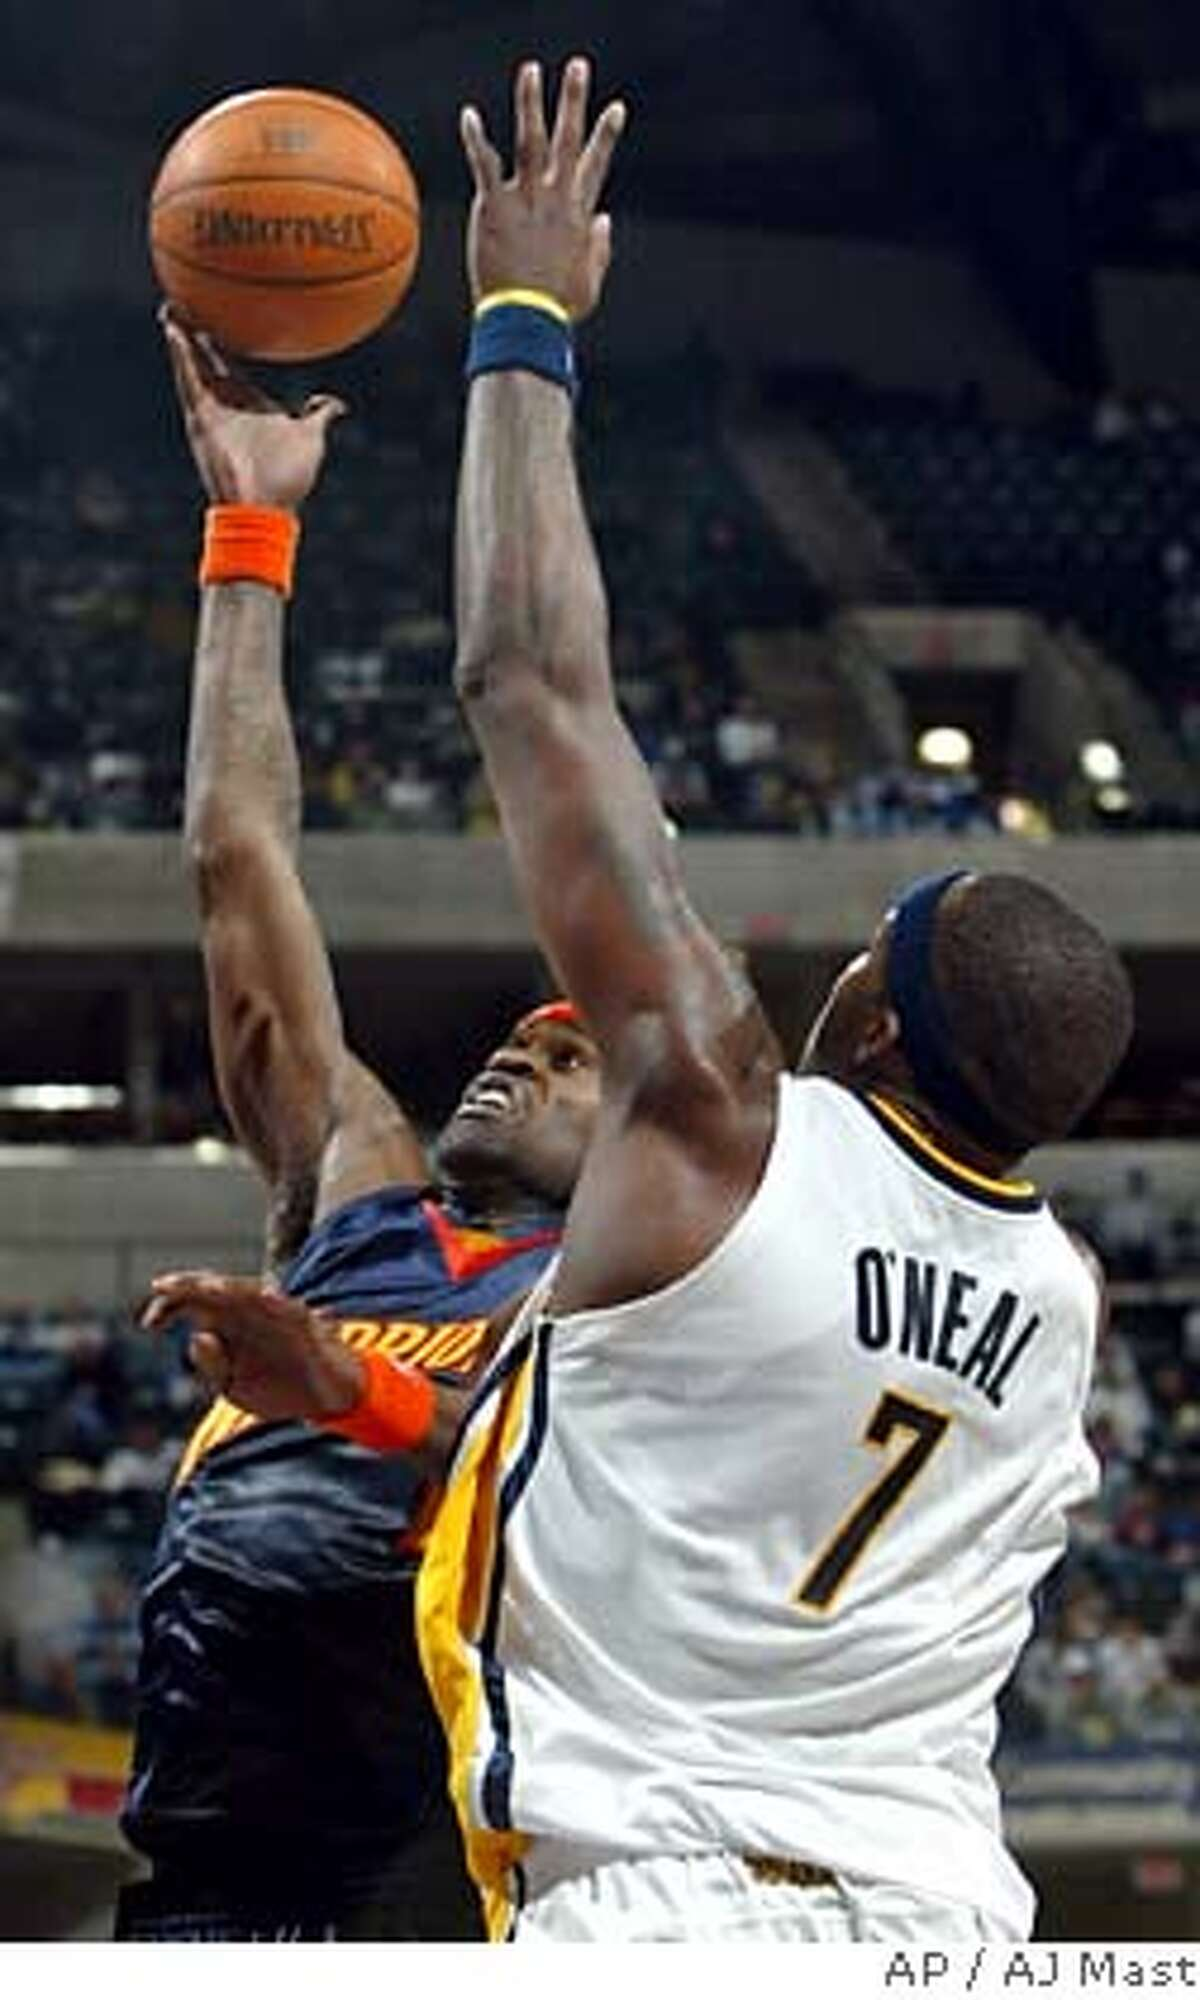 Golden State Warriors Stephen Jackson, left, shoots in front of Indiana Pacers' Jermaine O'Neal in the third quarter of an NBA basketball game in Indianapolis, Monday, Feb. 5, 2007. The Warriors won 113-98. (AP Photo/AJ Mast)